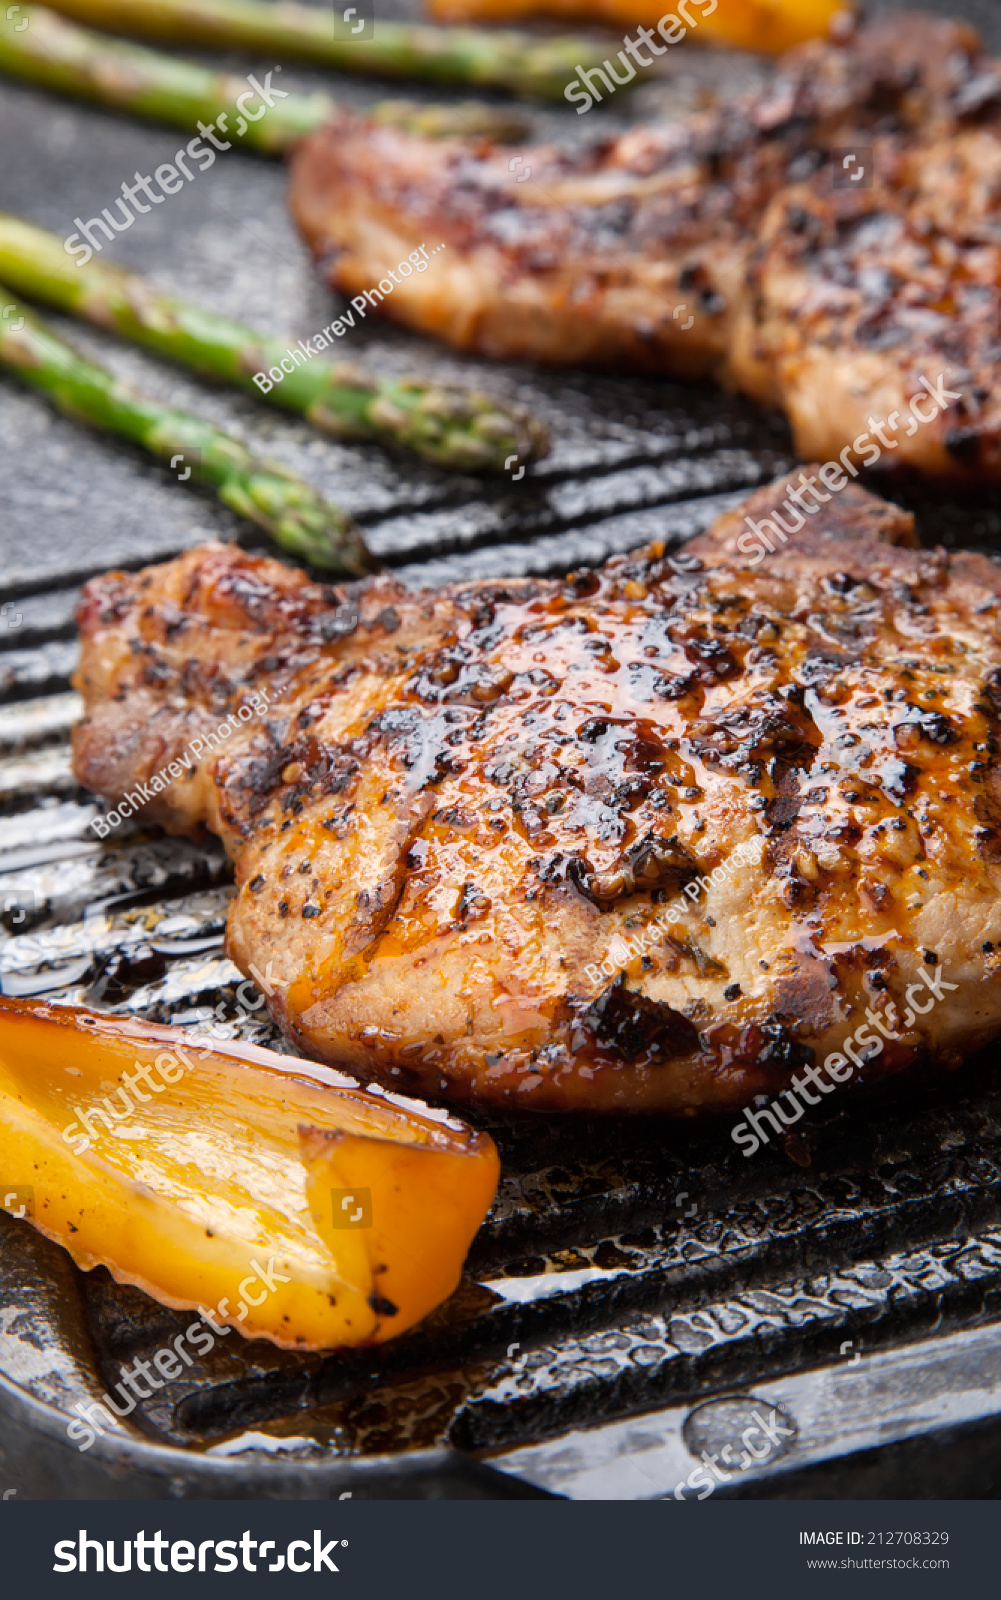 royalty free juicy pork chops are grilled on griddle u2026 212708329